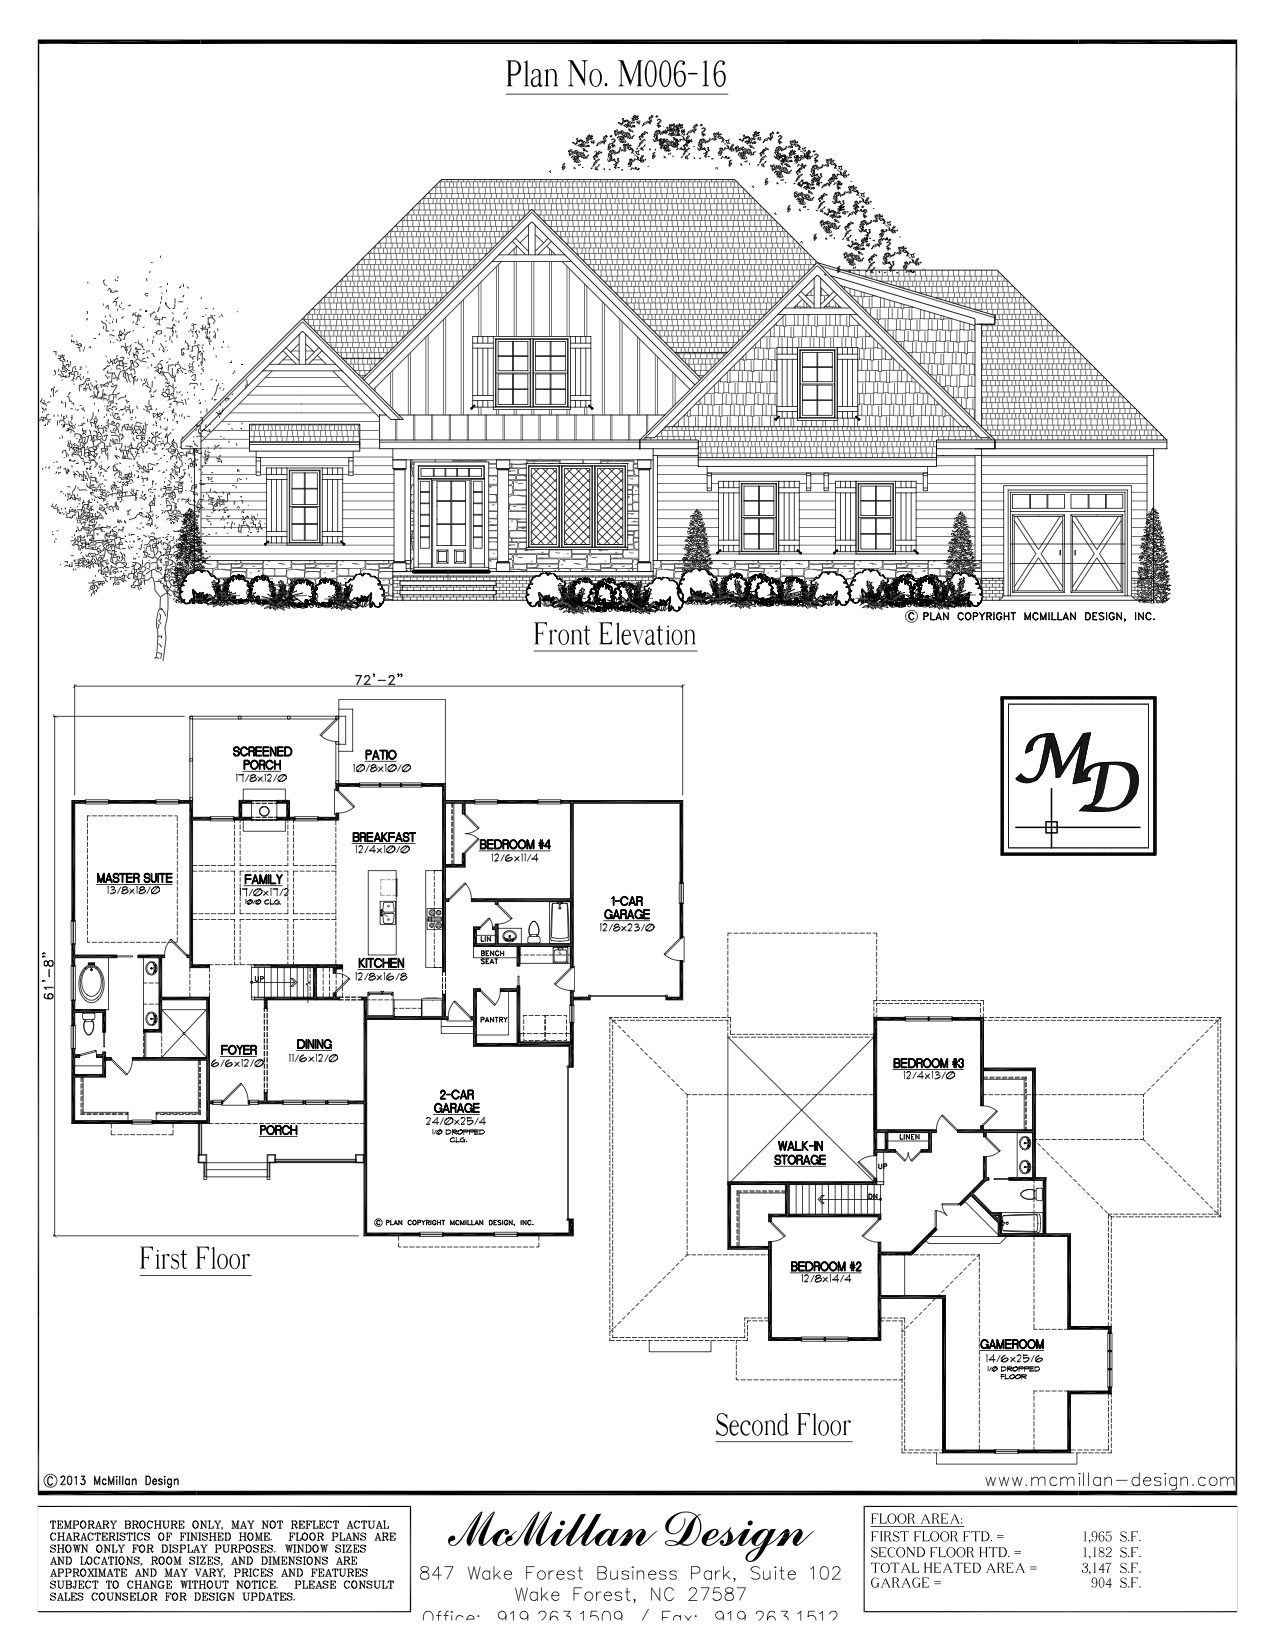 This beauty will be making its way to Lot 24 at Barham Crossing in Wake Forest for an October 2016 delivery. Contact us to find out more!